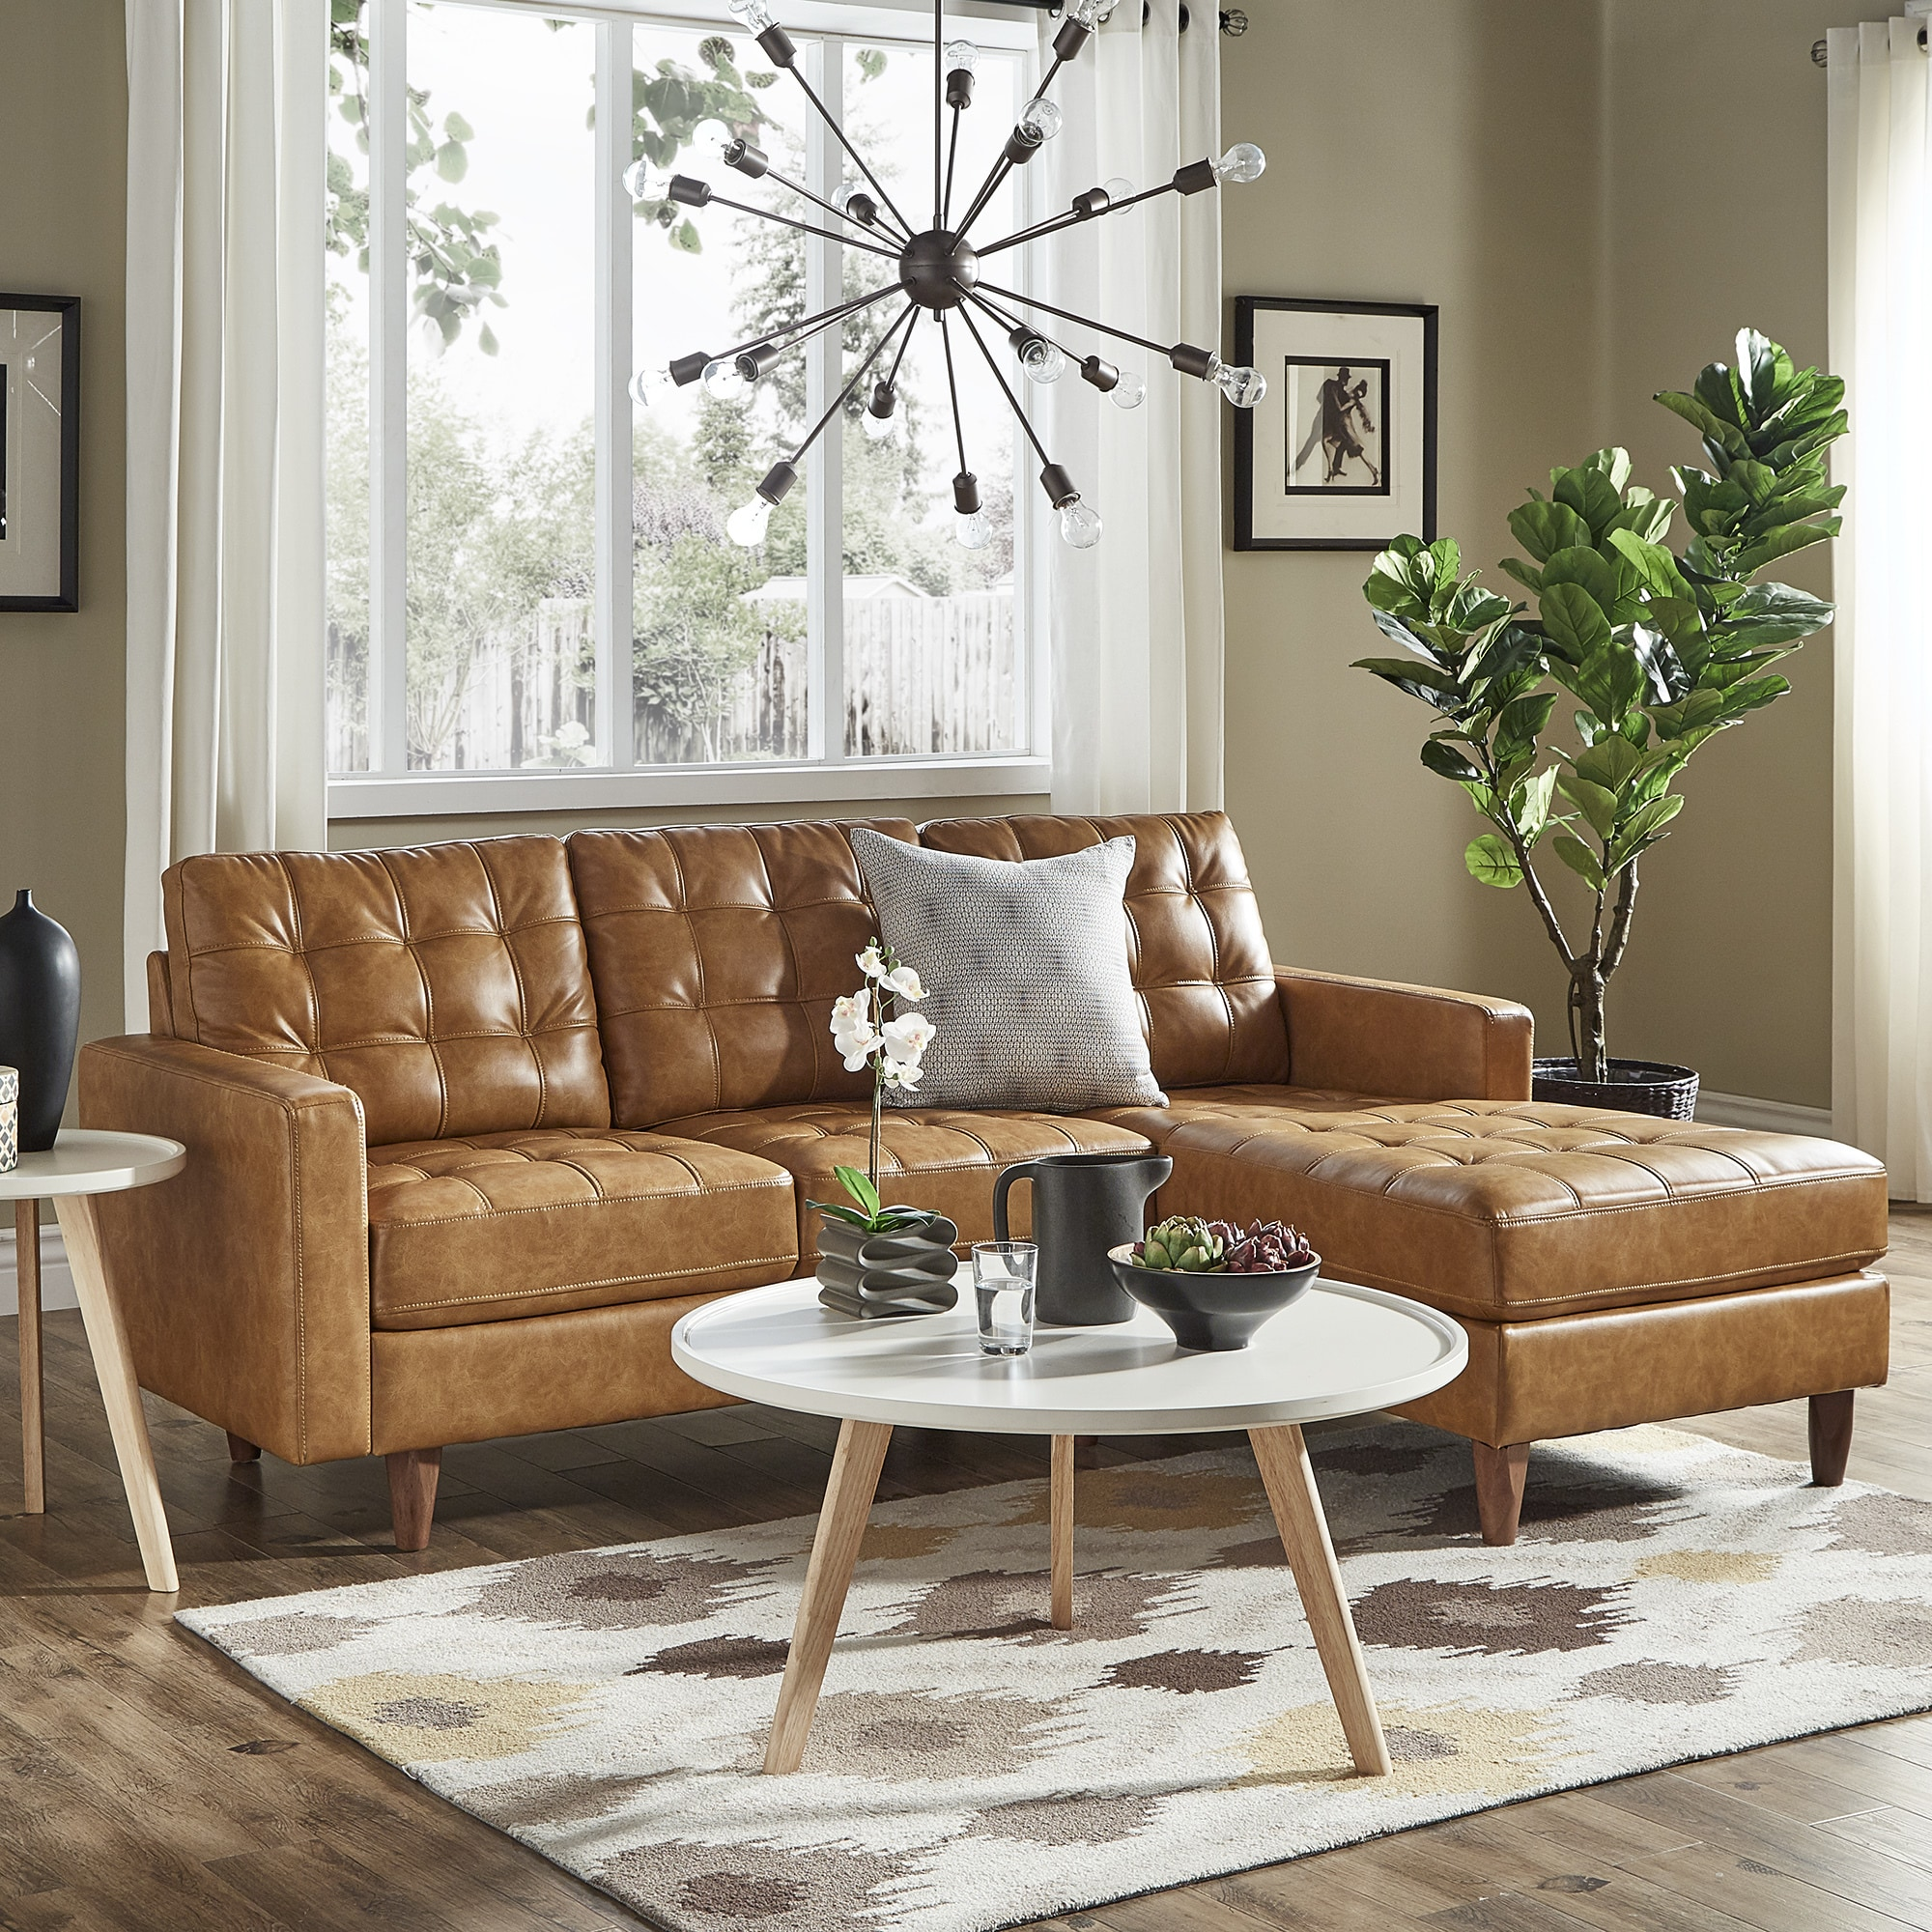 Enjoyable Odin Caramel Leather Gel Sofa Sectional With Chaise By Inspire Q Modern Machost Co Dining Chair Design Ideas Machostcouk